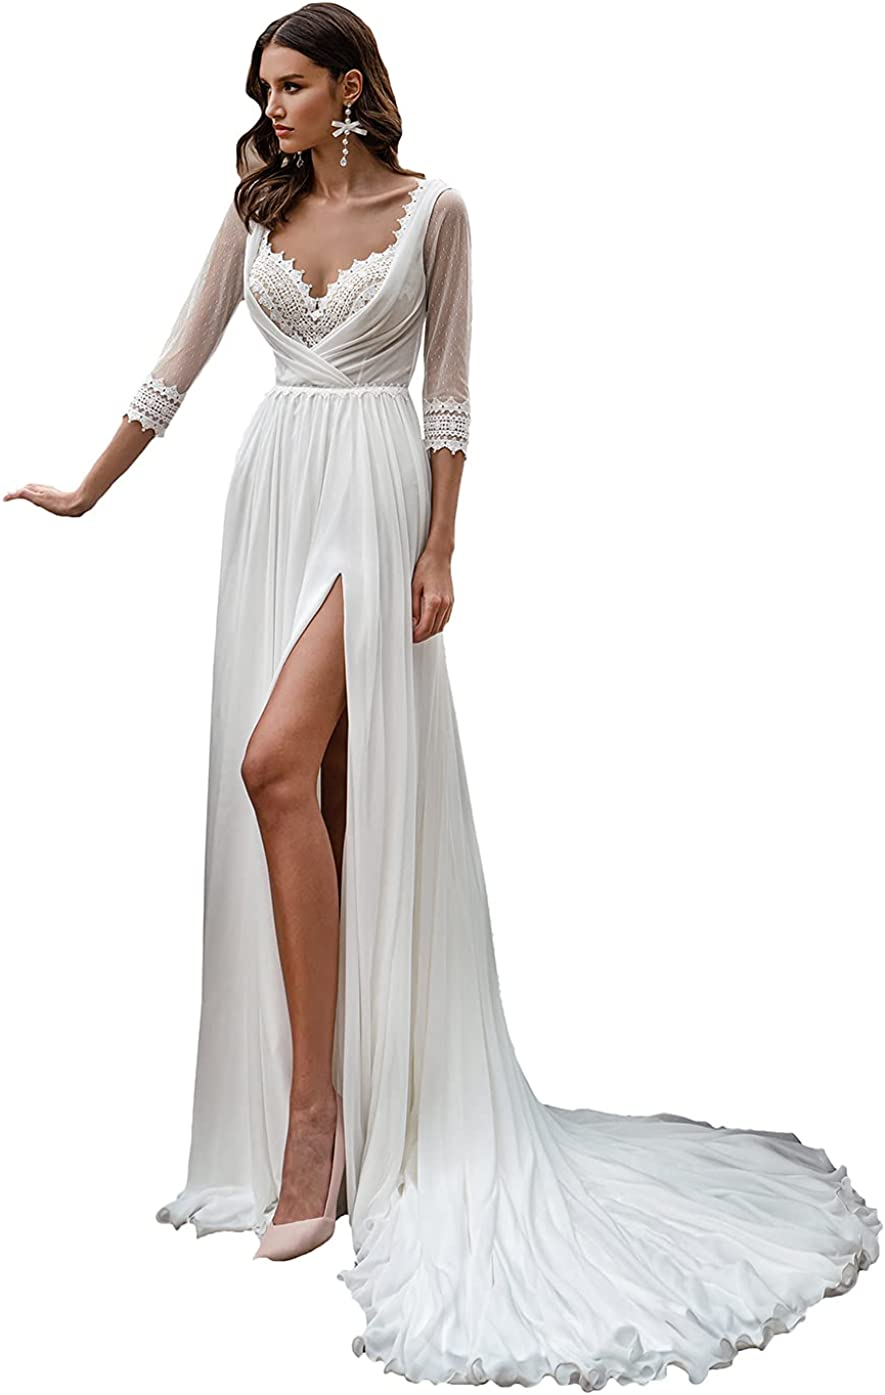 DDMIX Boho Wedding Dresses for Bride Lace Chiffon with Sleeves Slit Wedding Gowns for Women